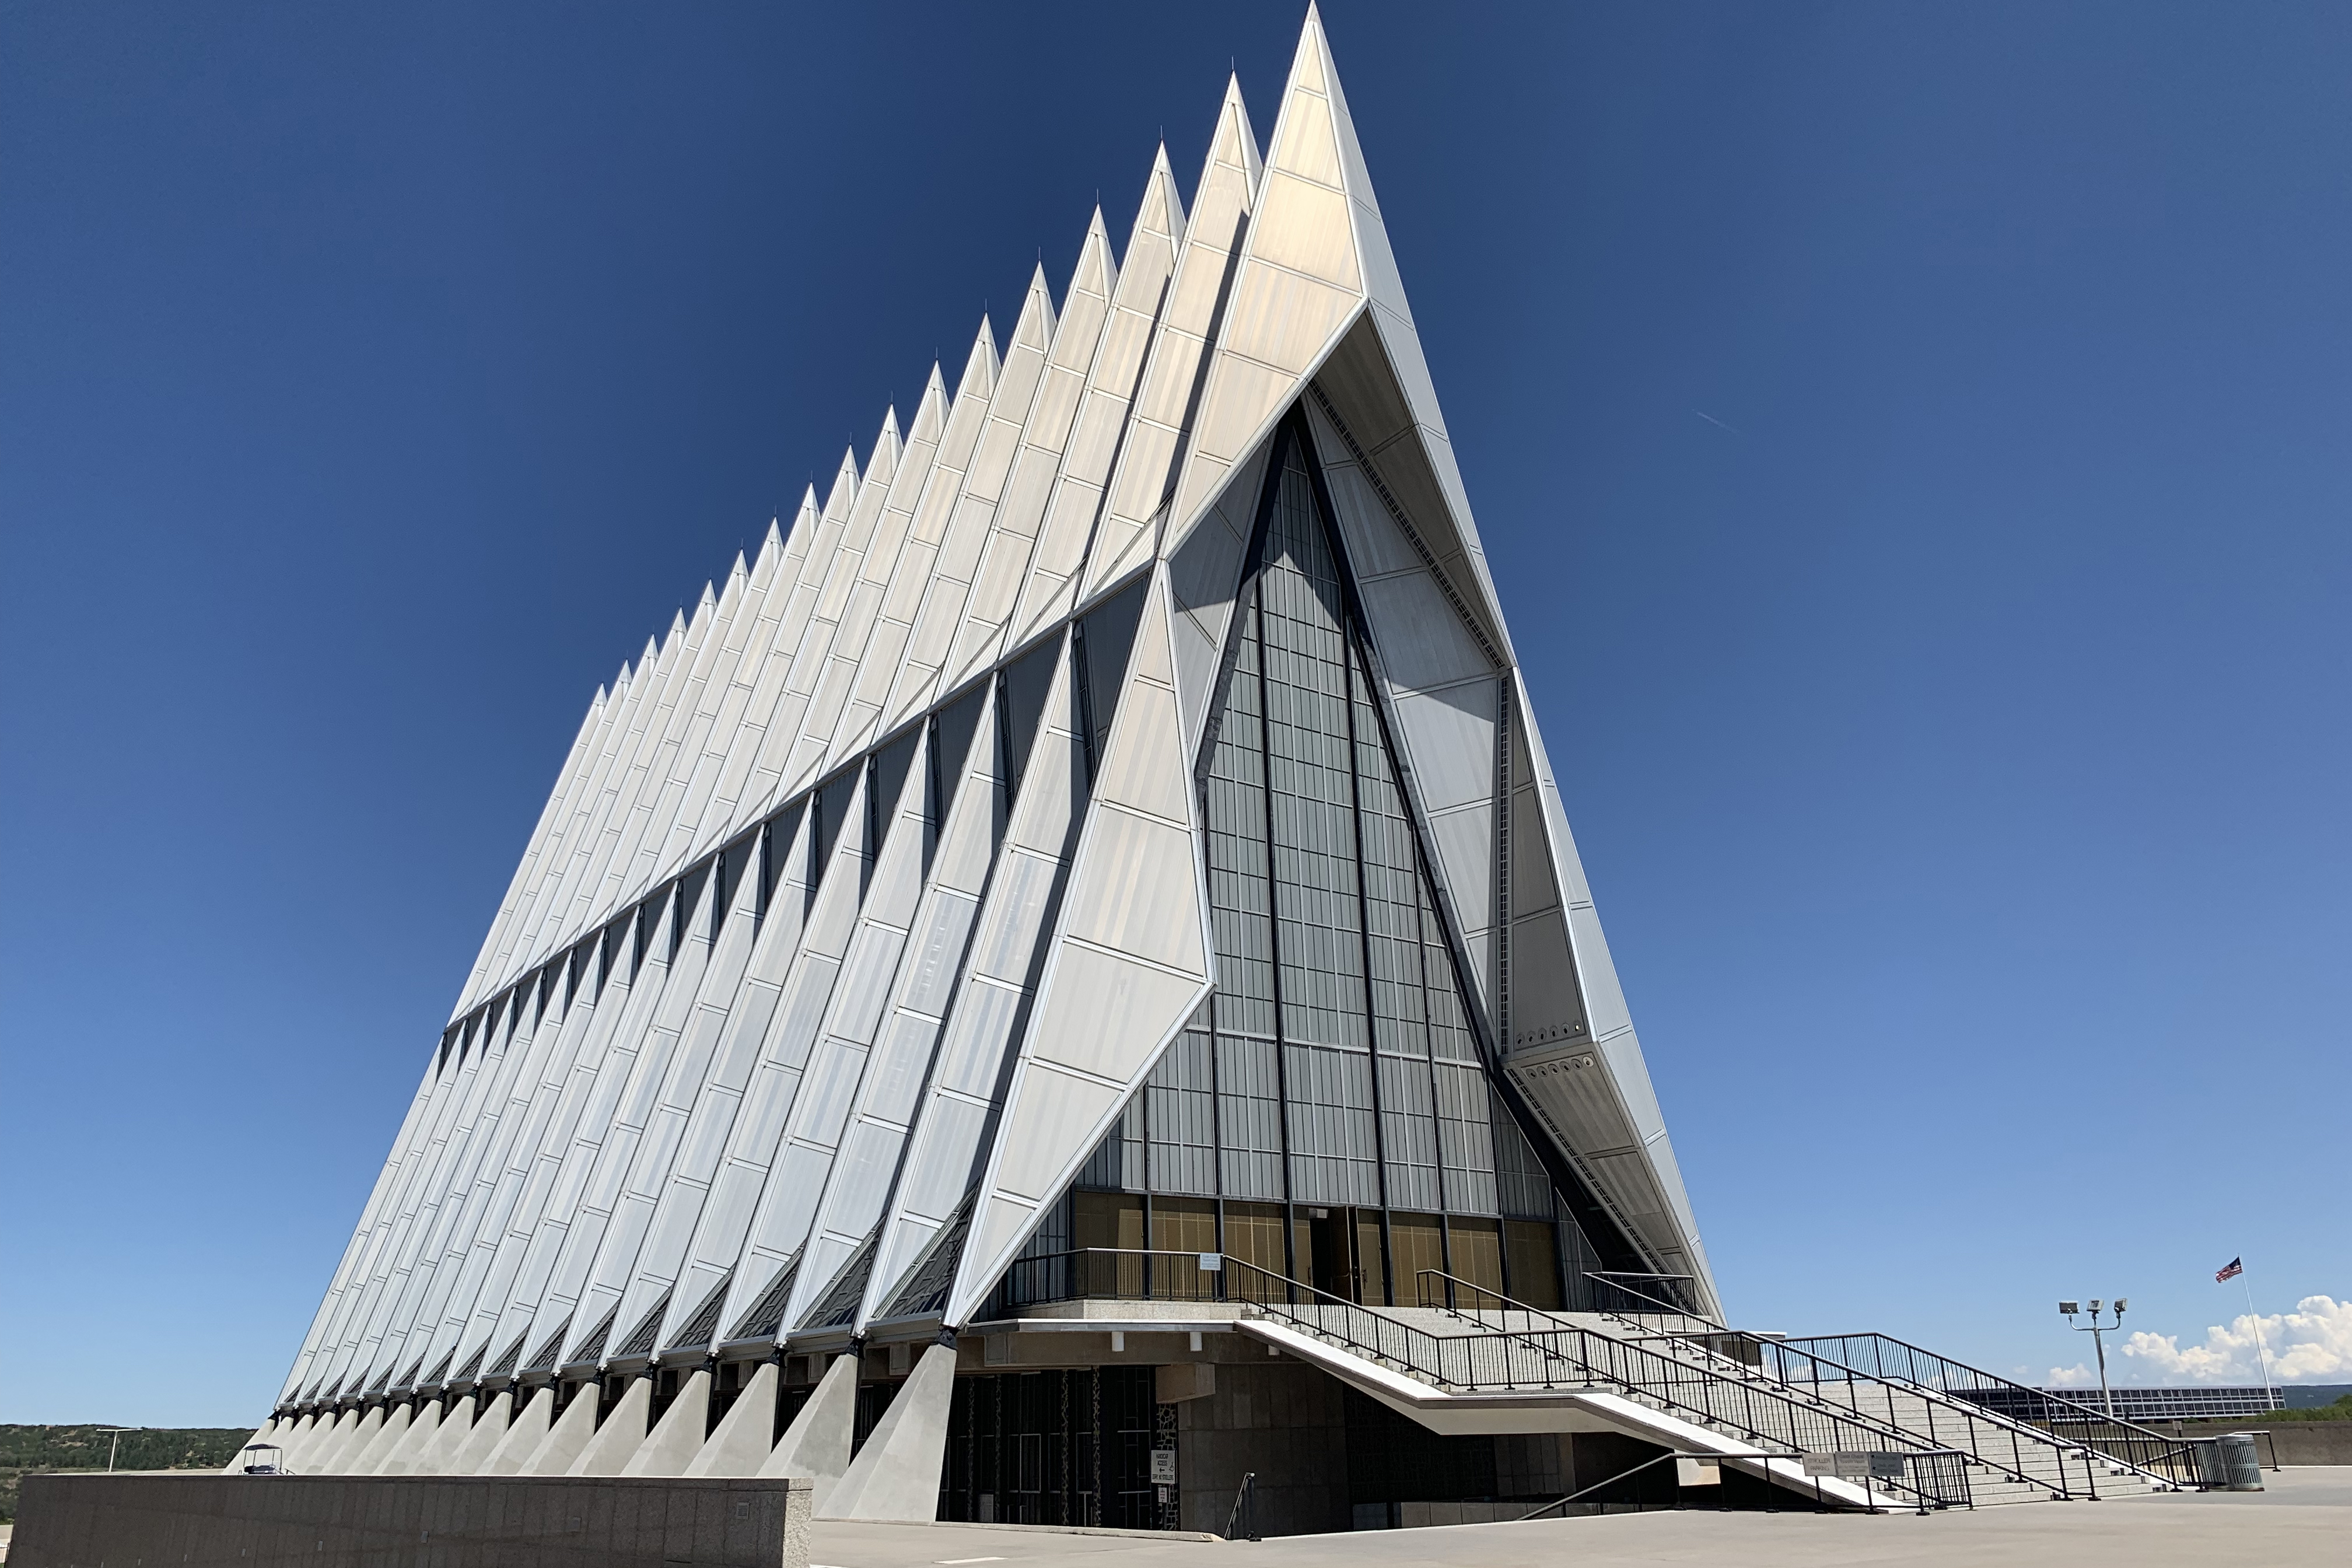 Caption: The Chapel at the United States Air Force Academy is closed for at least four years for extensive repairs., Credit: Dan Boyce / American Homefront